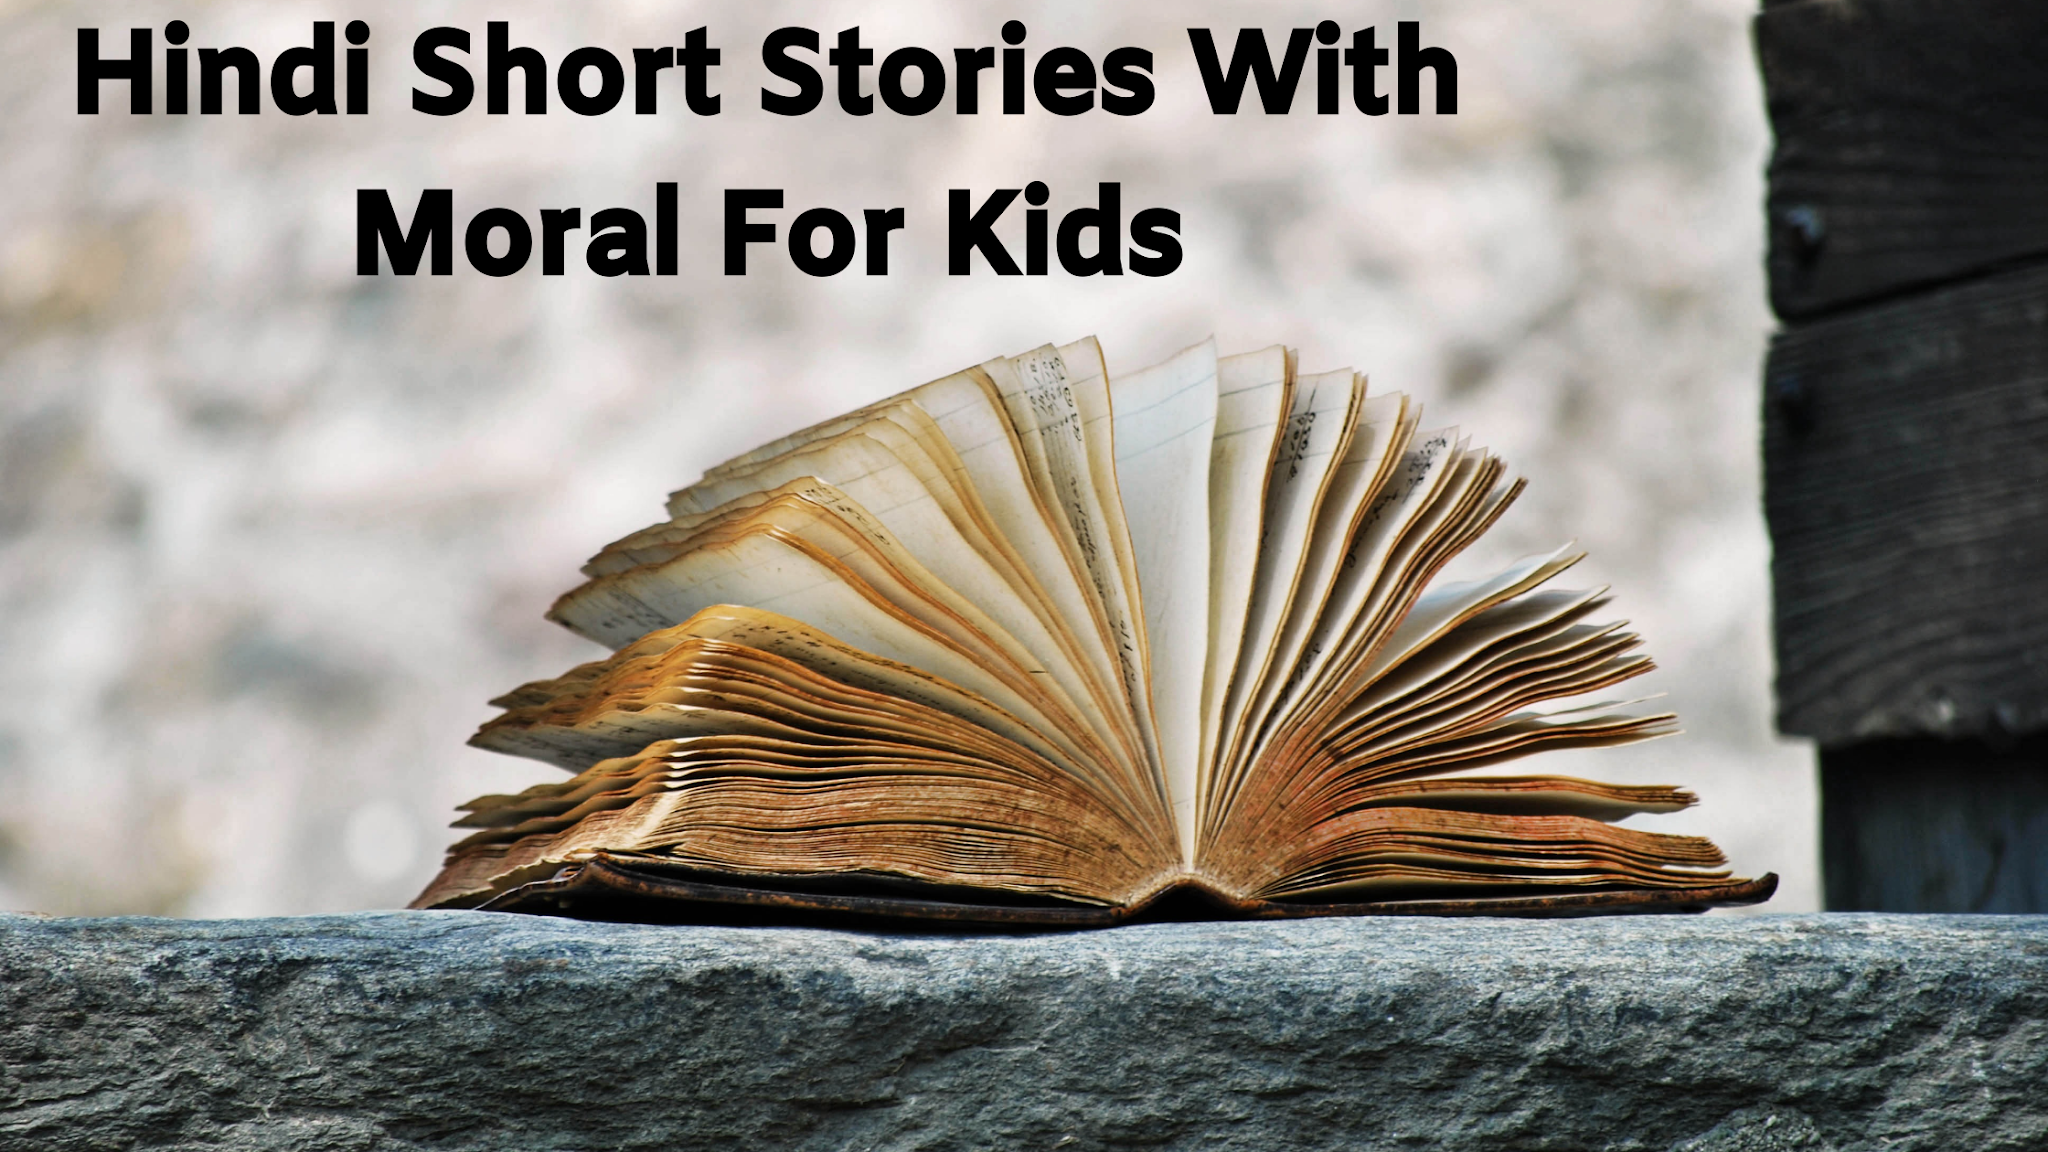 Hindi Short Stories With Moral For Kids